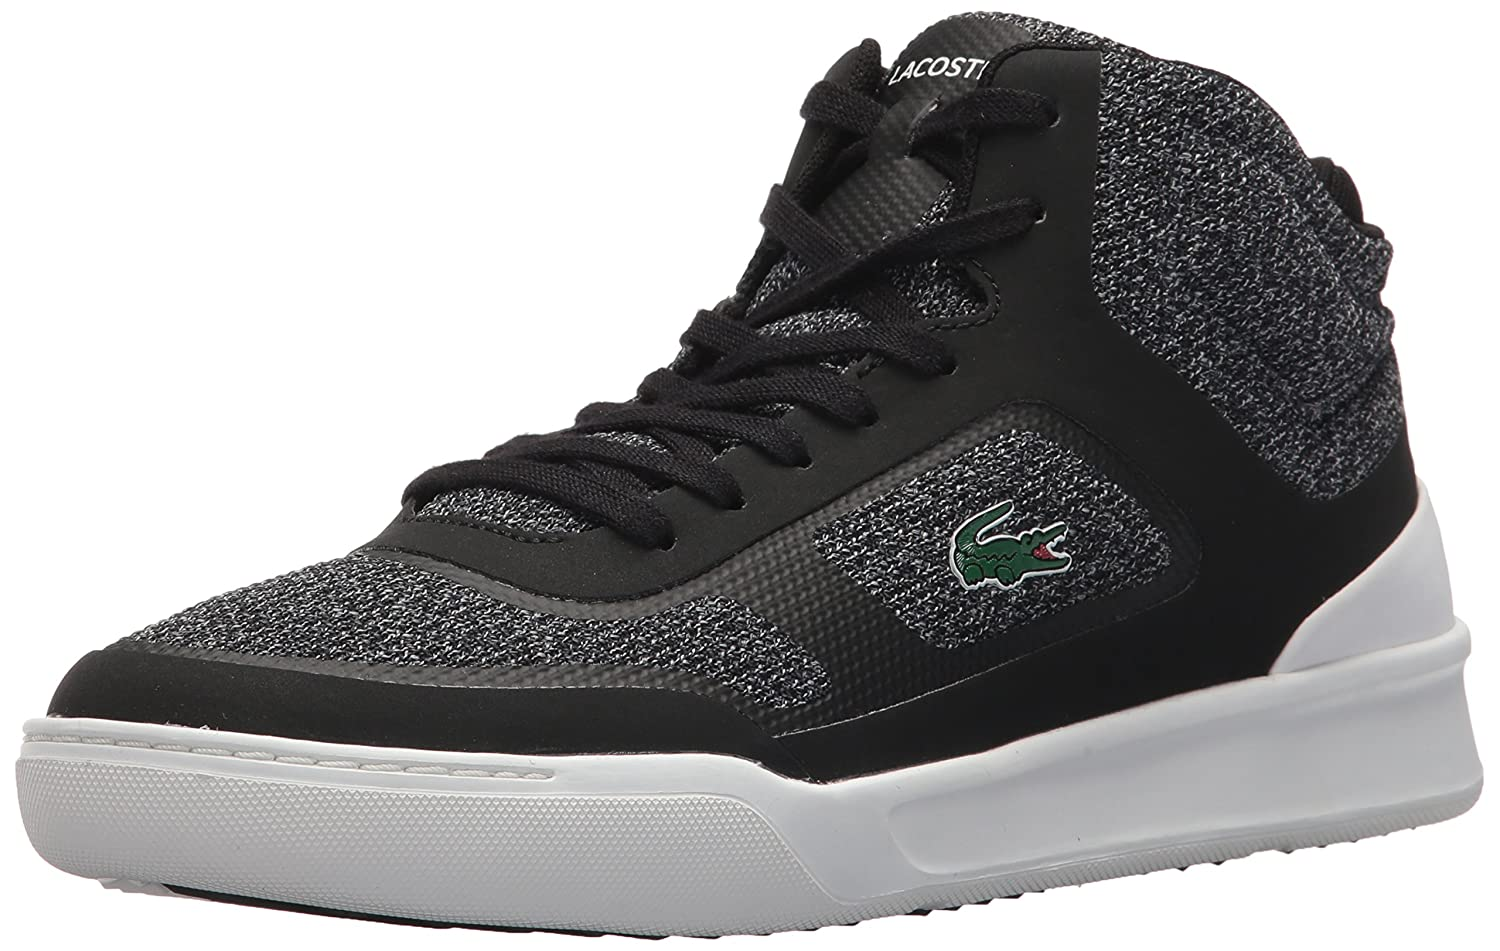 fc67f43b83ff3a Lacoste men explorateur mid sneaker buy online at low prices in india jpg  1500x951 Lacoste men